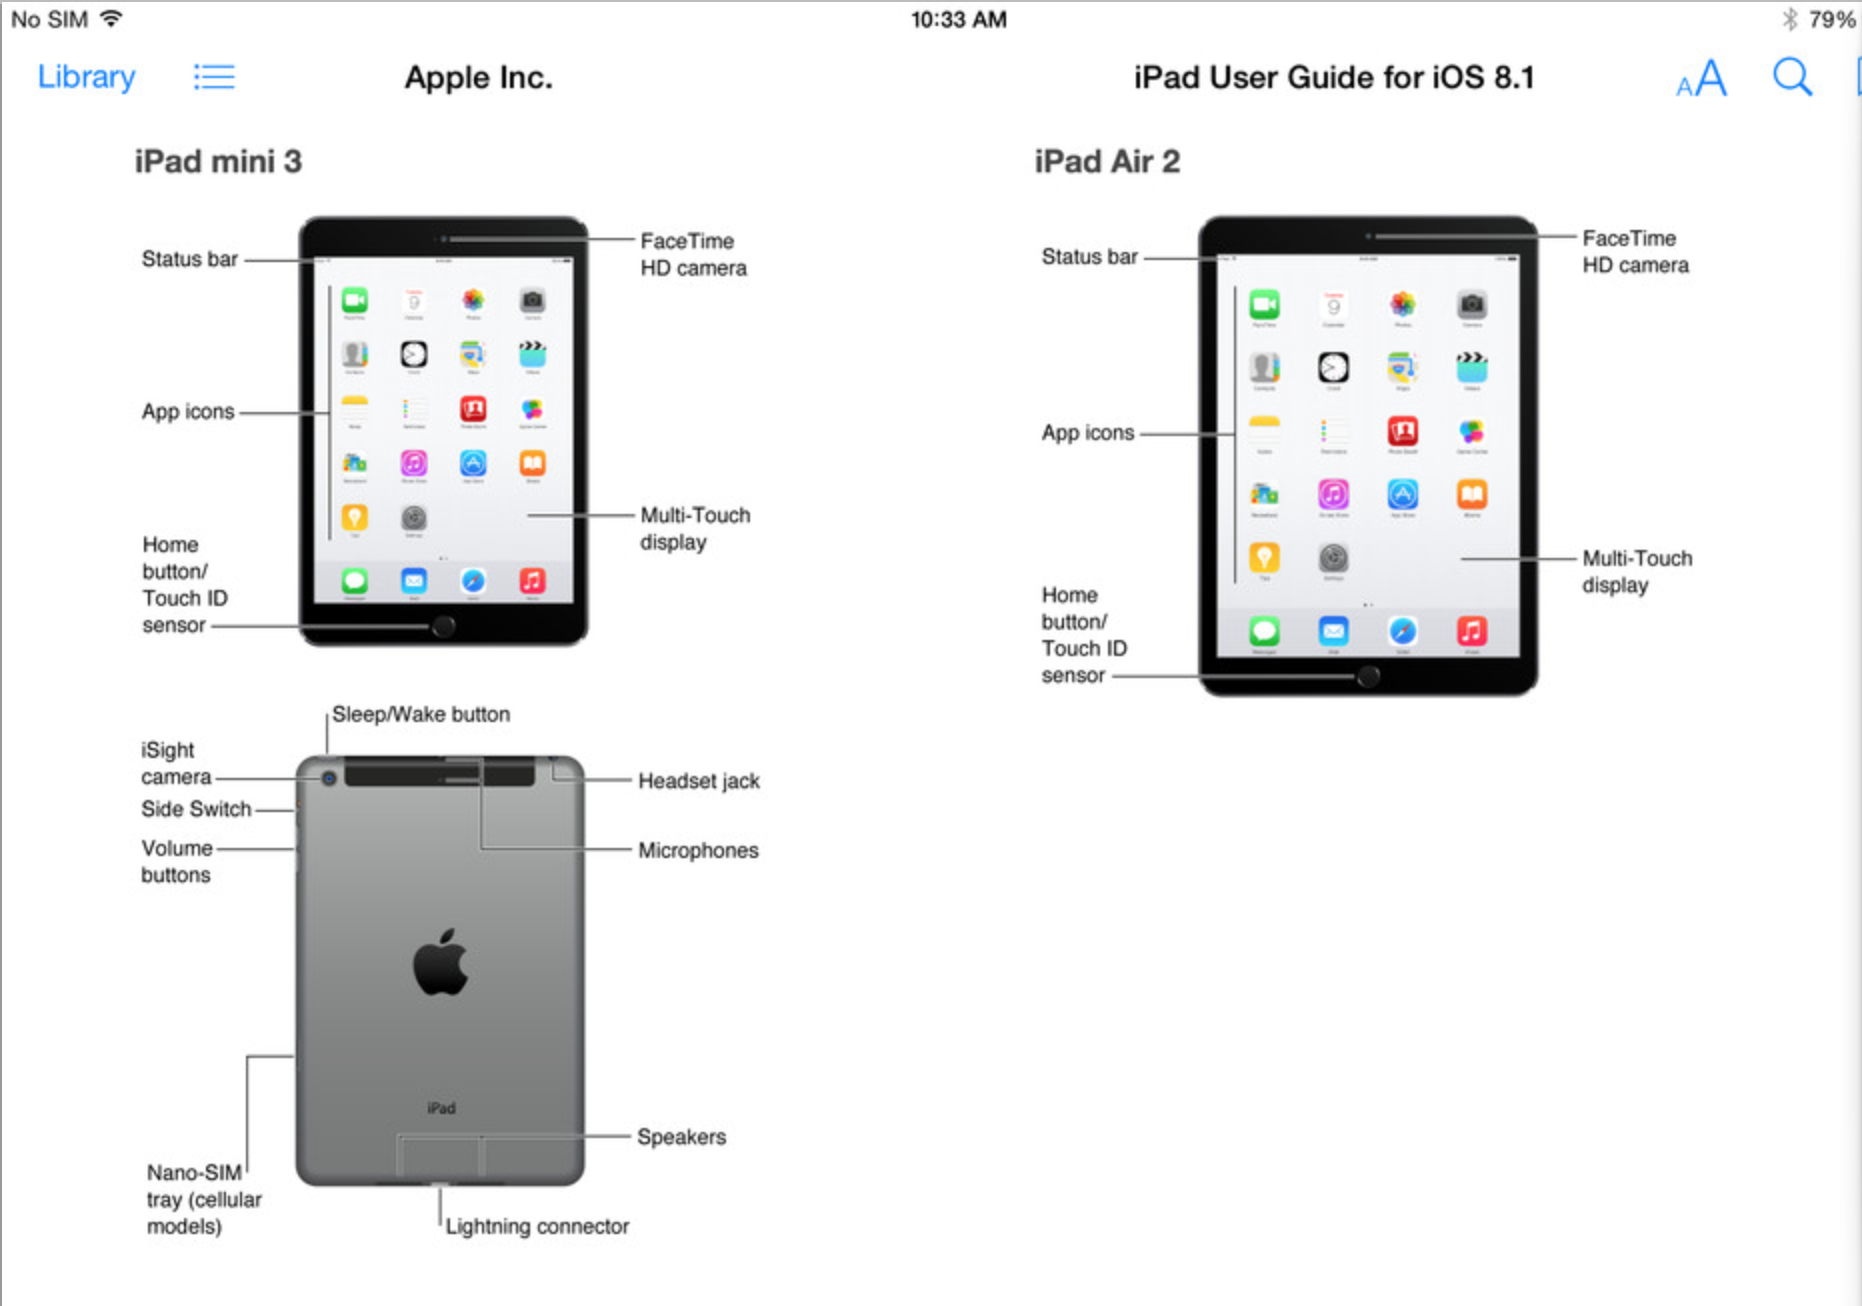 New iPads leaked on iTunes Store